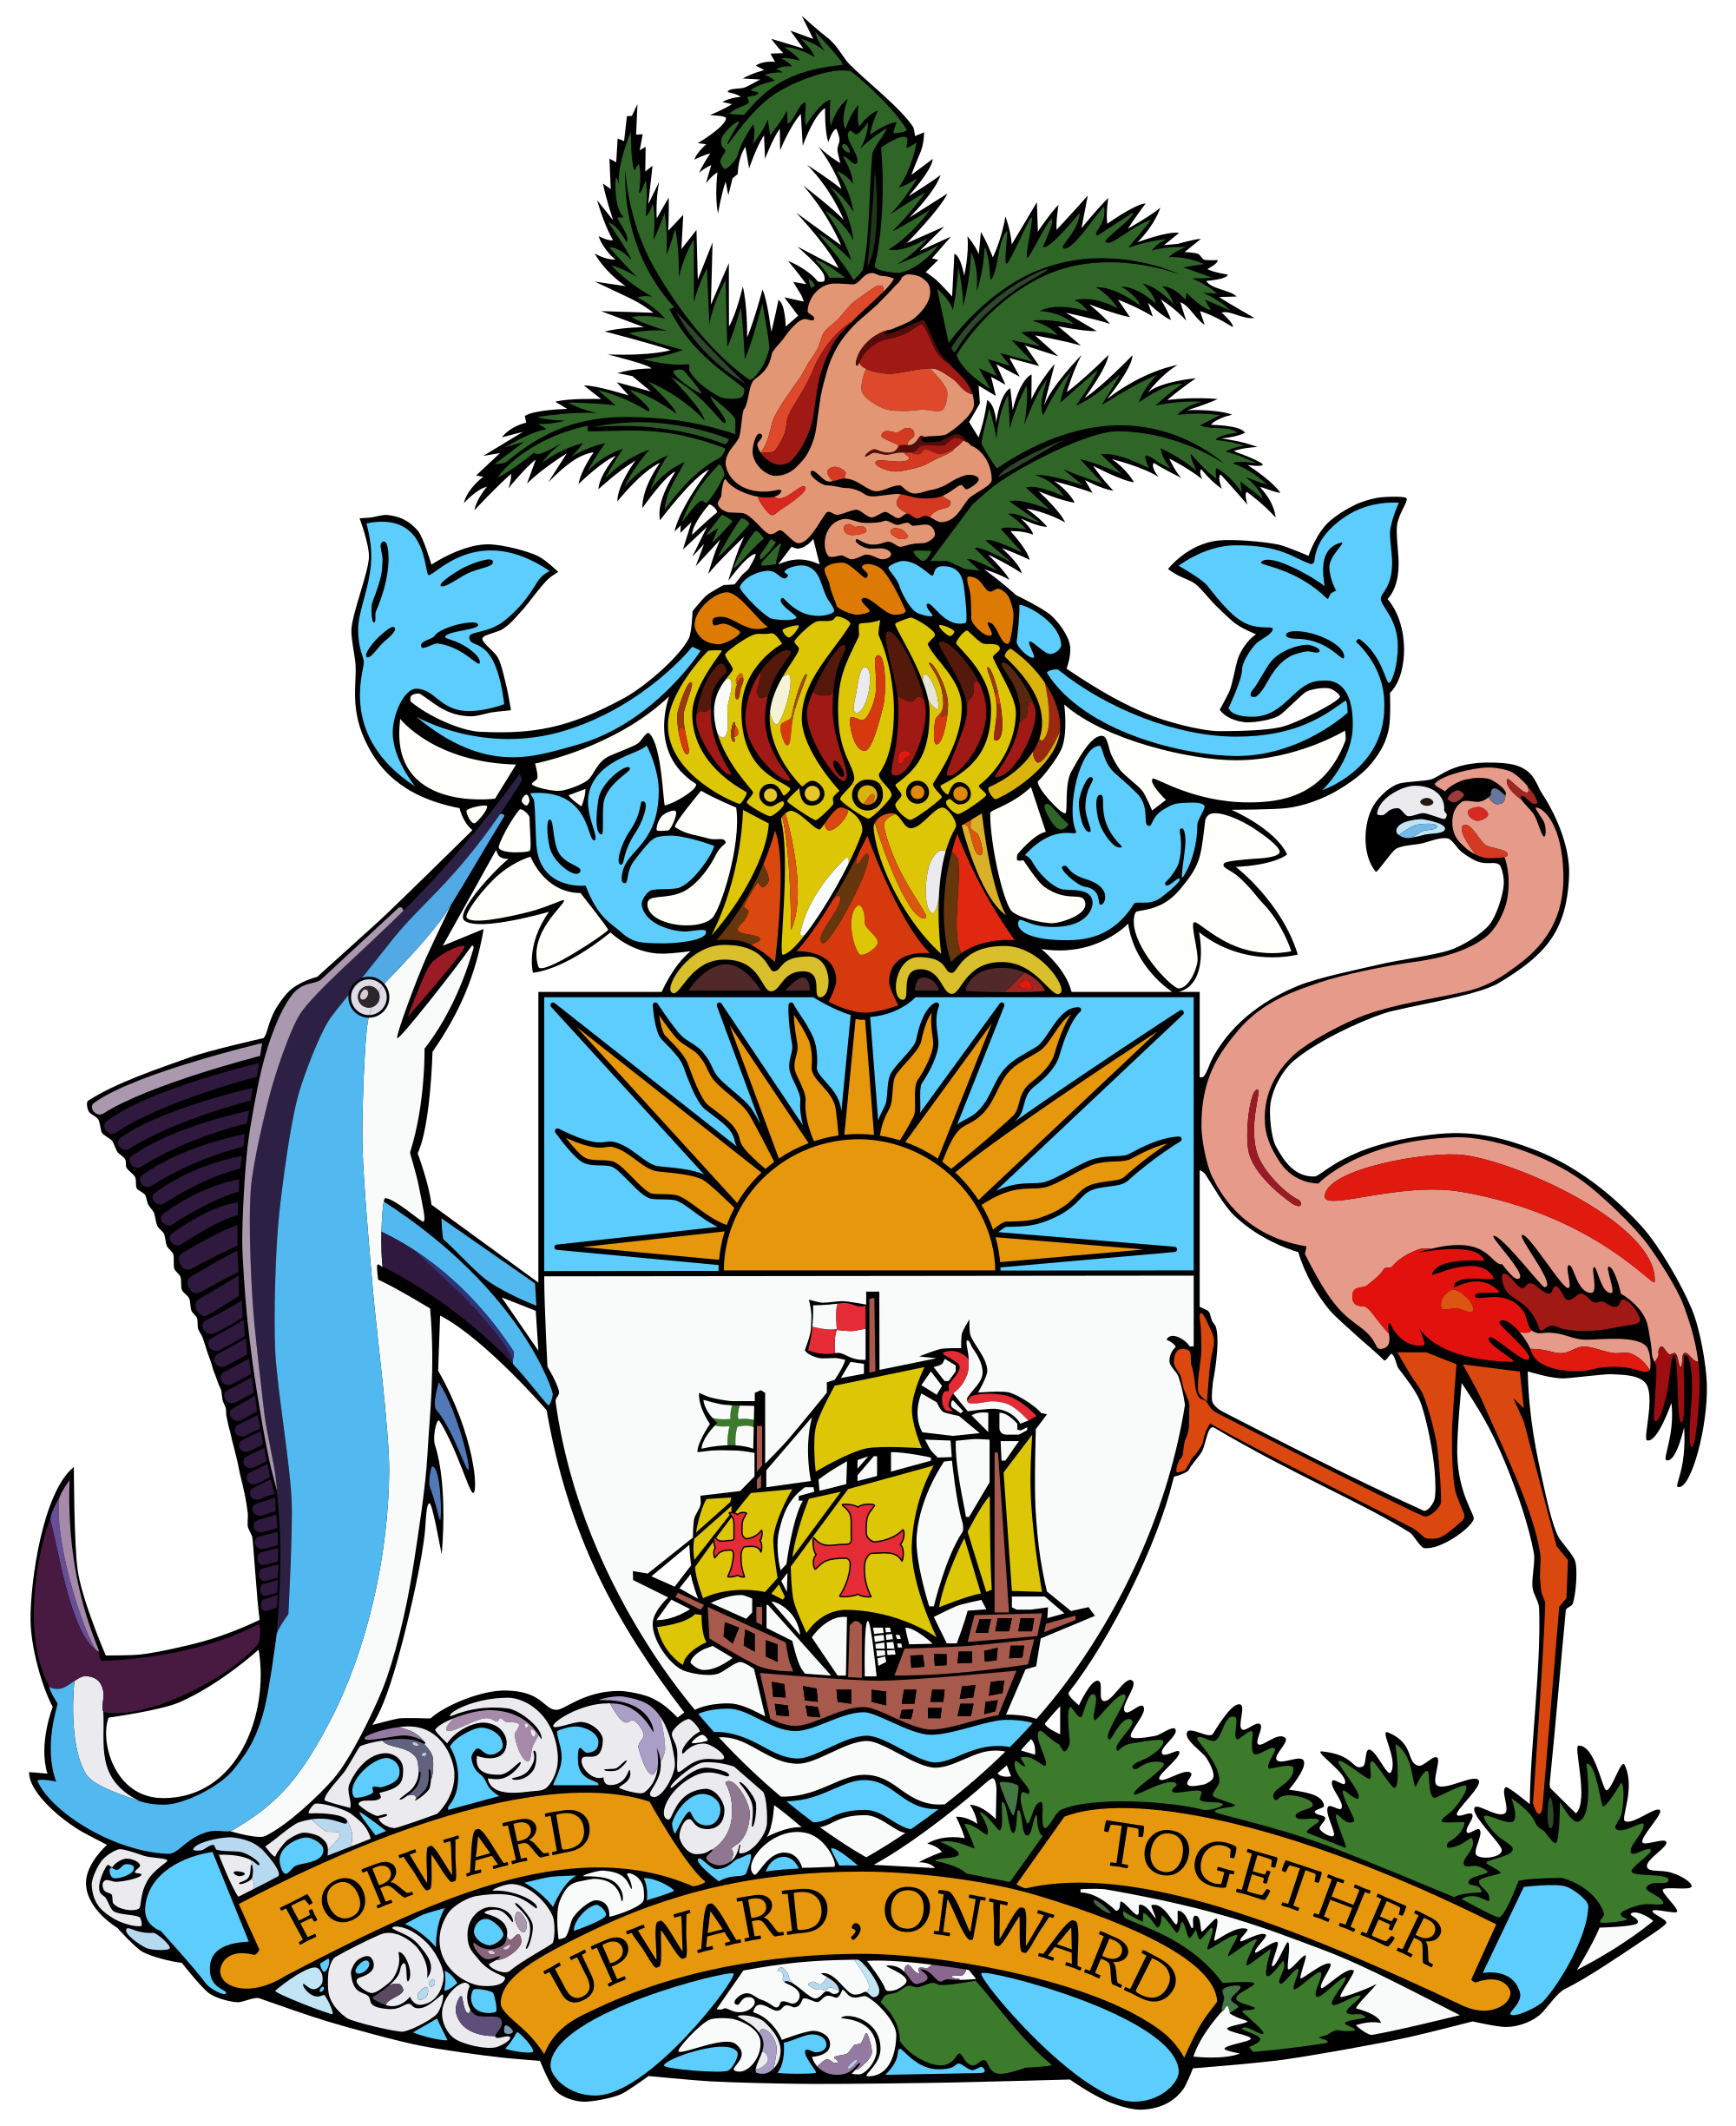 royalty free Coat of arms the. Christopher columbus clipart wikipedia.